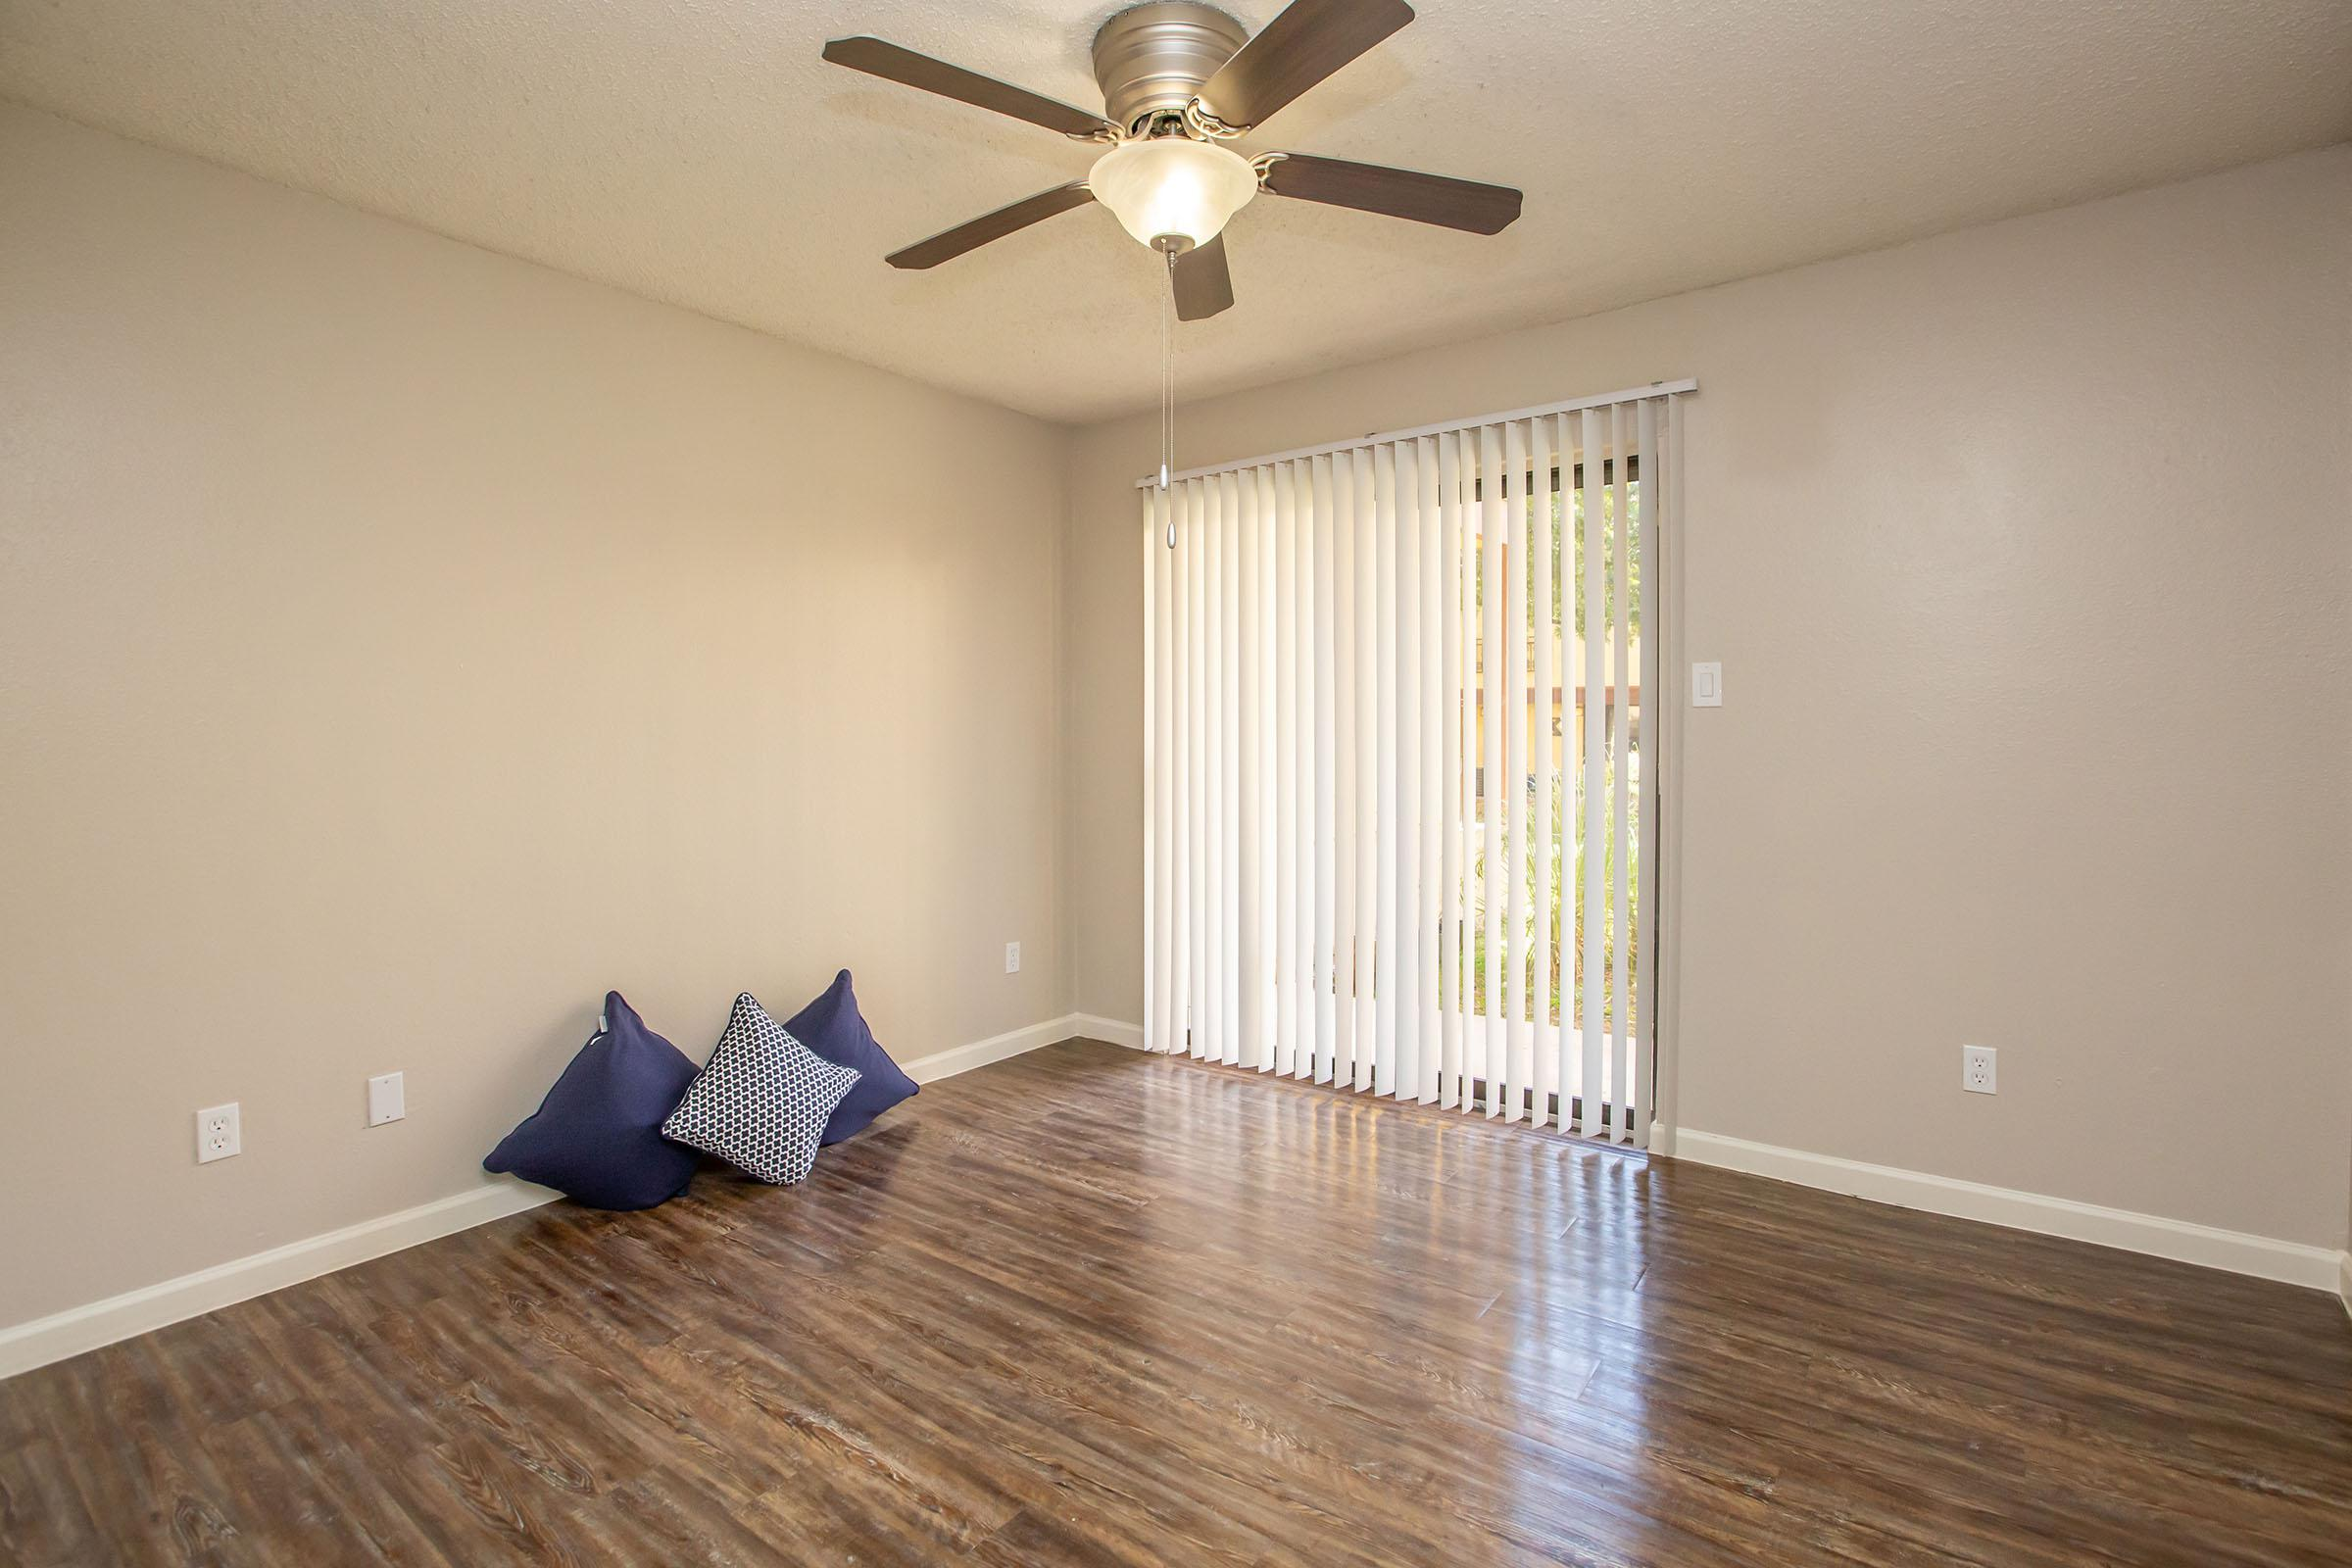 a living room with a wooden floor